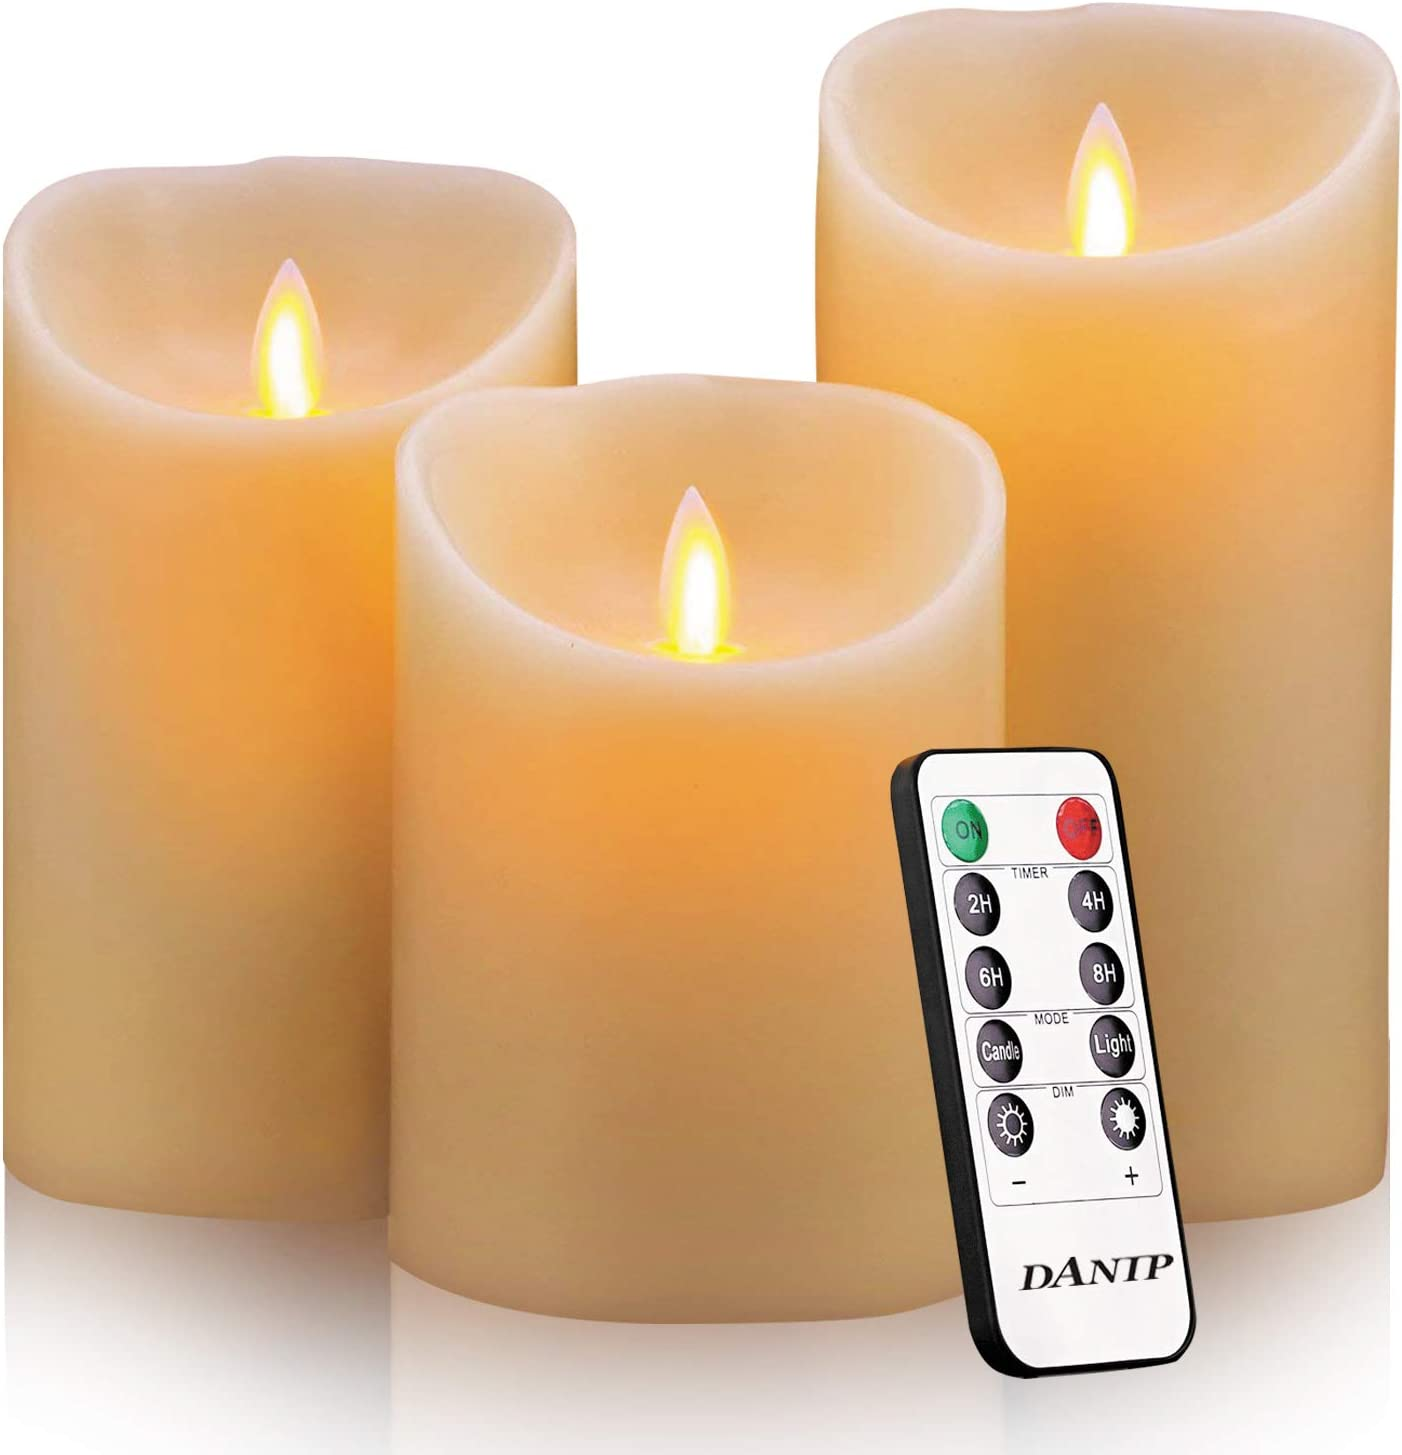 """DANIP Flameless Candles, 4"""" 5"""" 6"""" Set of 3 Real Wax Not Plastic Pillars, Include Realistic Dancing LED Flames and 10-Key Remote Control with 2/4/6/8-hours Timer Function,300+ Hours (3X1)"""